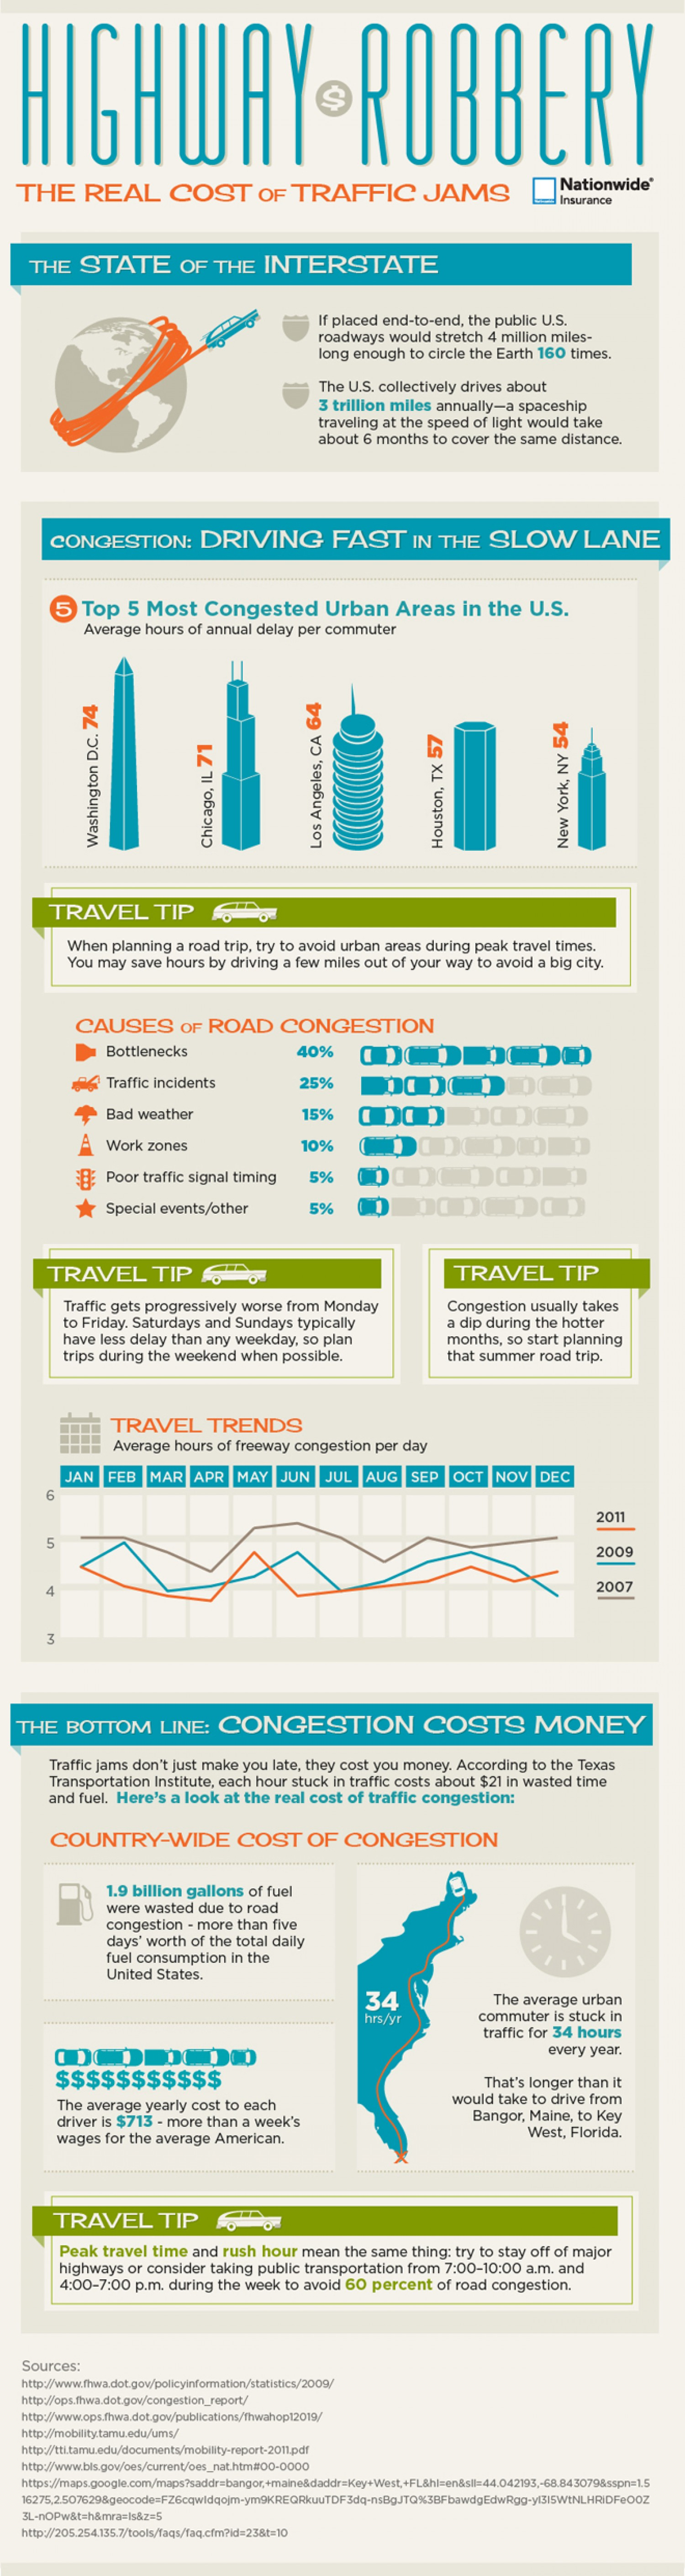 The Cost of Traffic Congestion